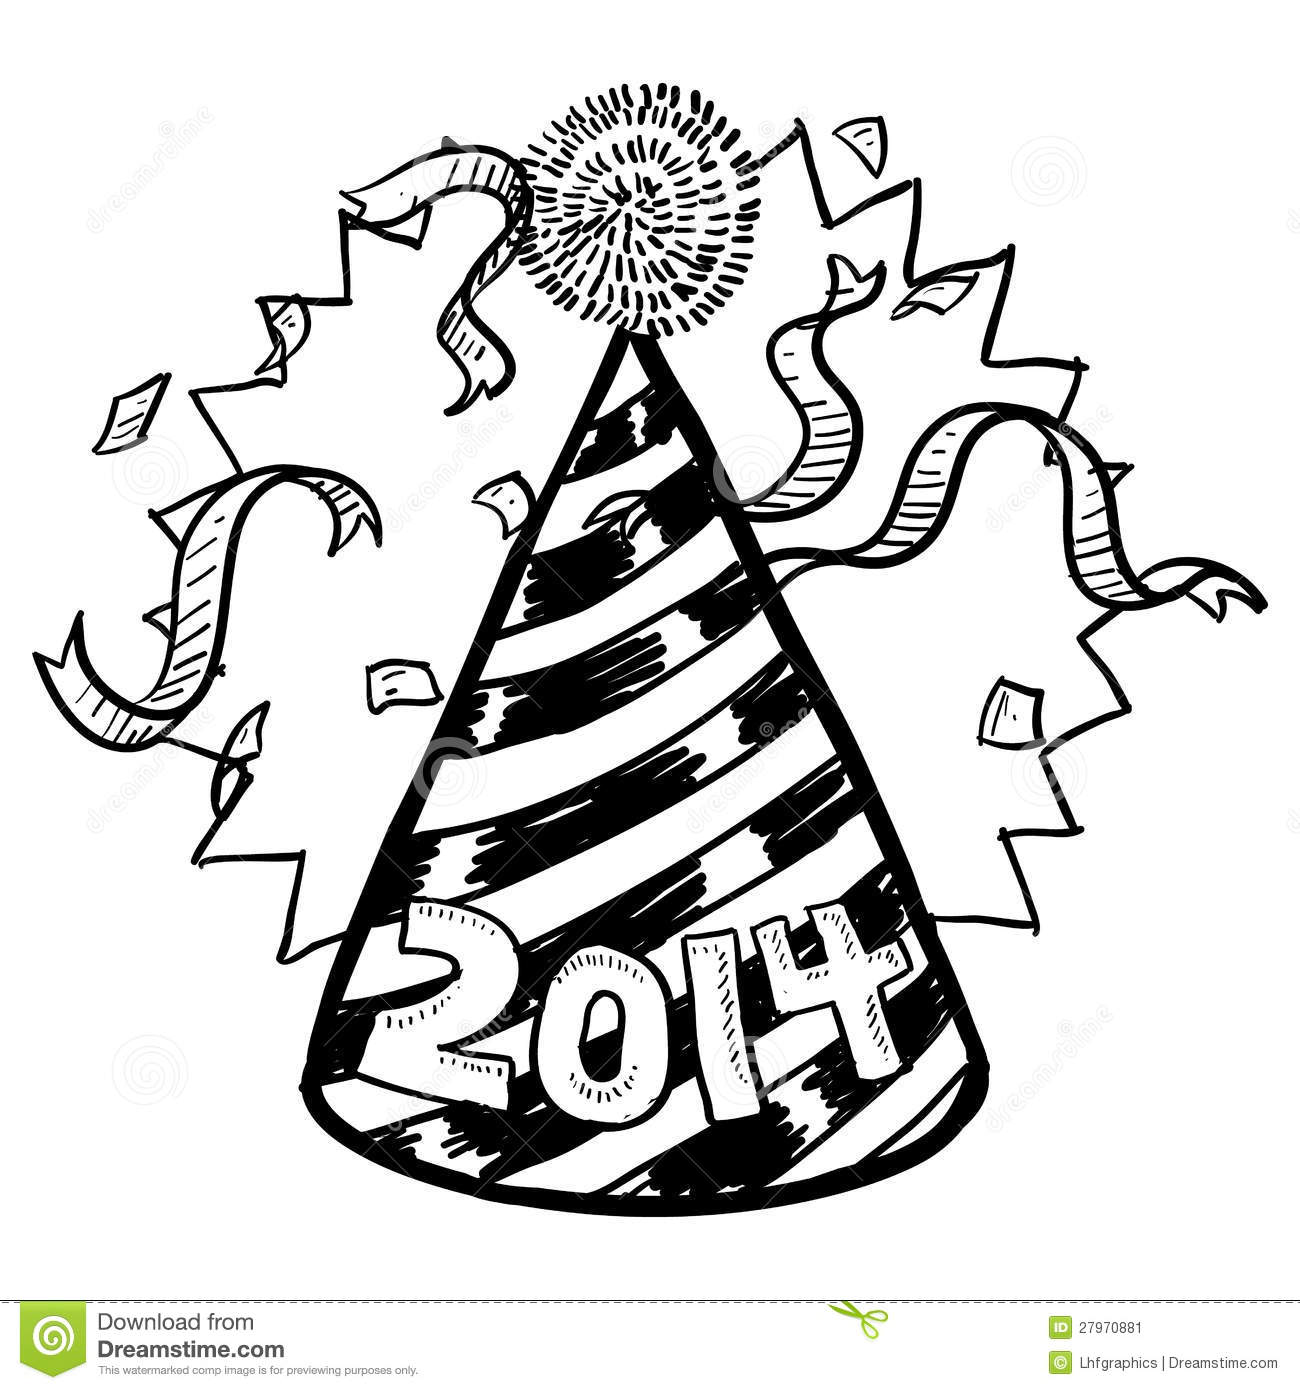 New Yearu0026#39;s 2014 Party Hat Sketch Stock Vector - Image 27970881